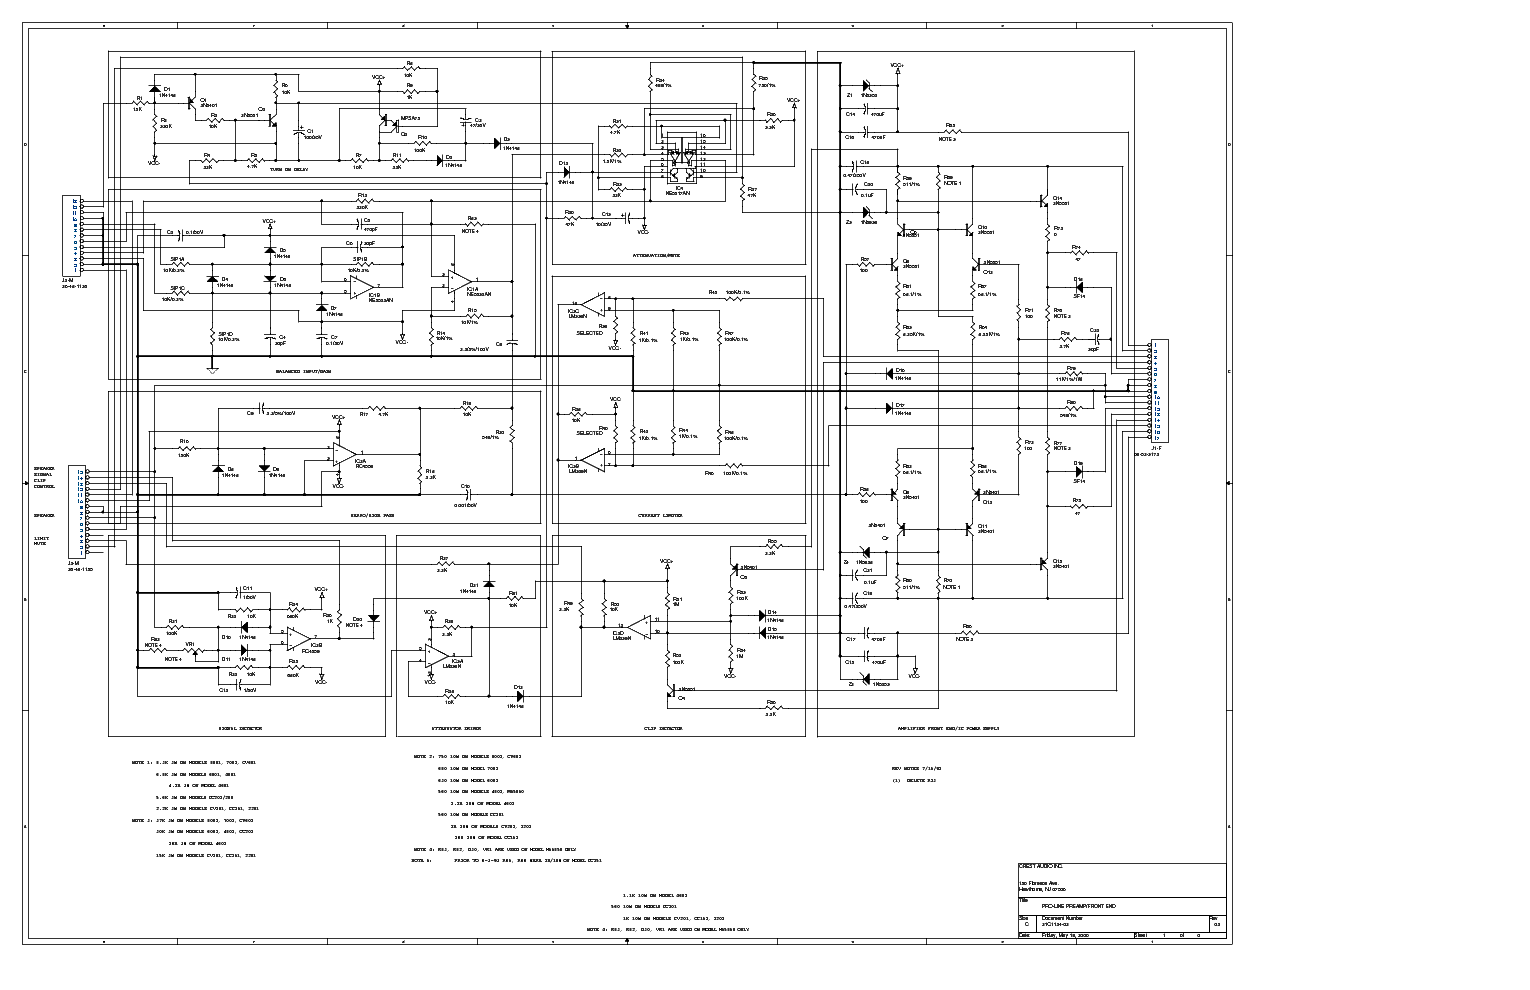 CRESTAUDIO PRO 4801 Service Manual download, schematics